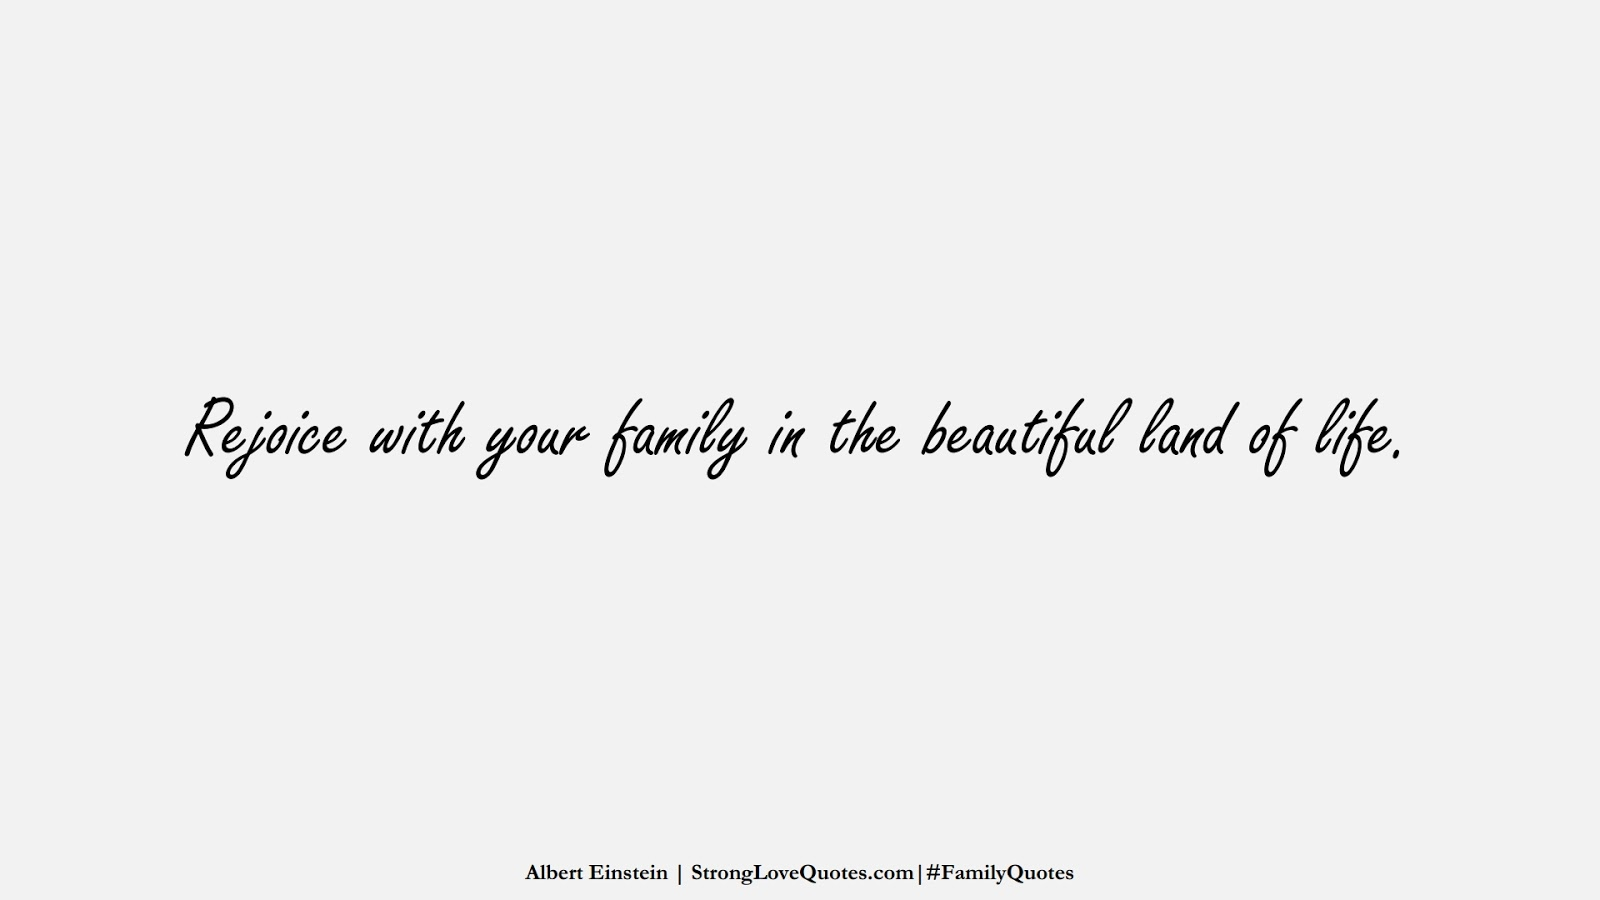 Rejoice with your family in the beautiful land of life. (Albert Einstein);  #FamilyQuotes